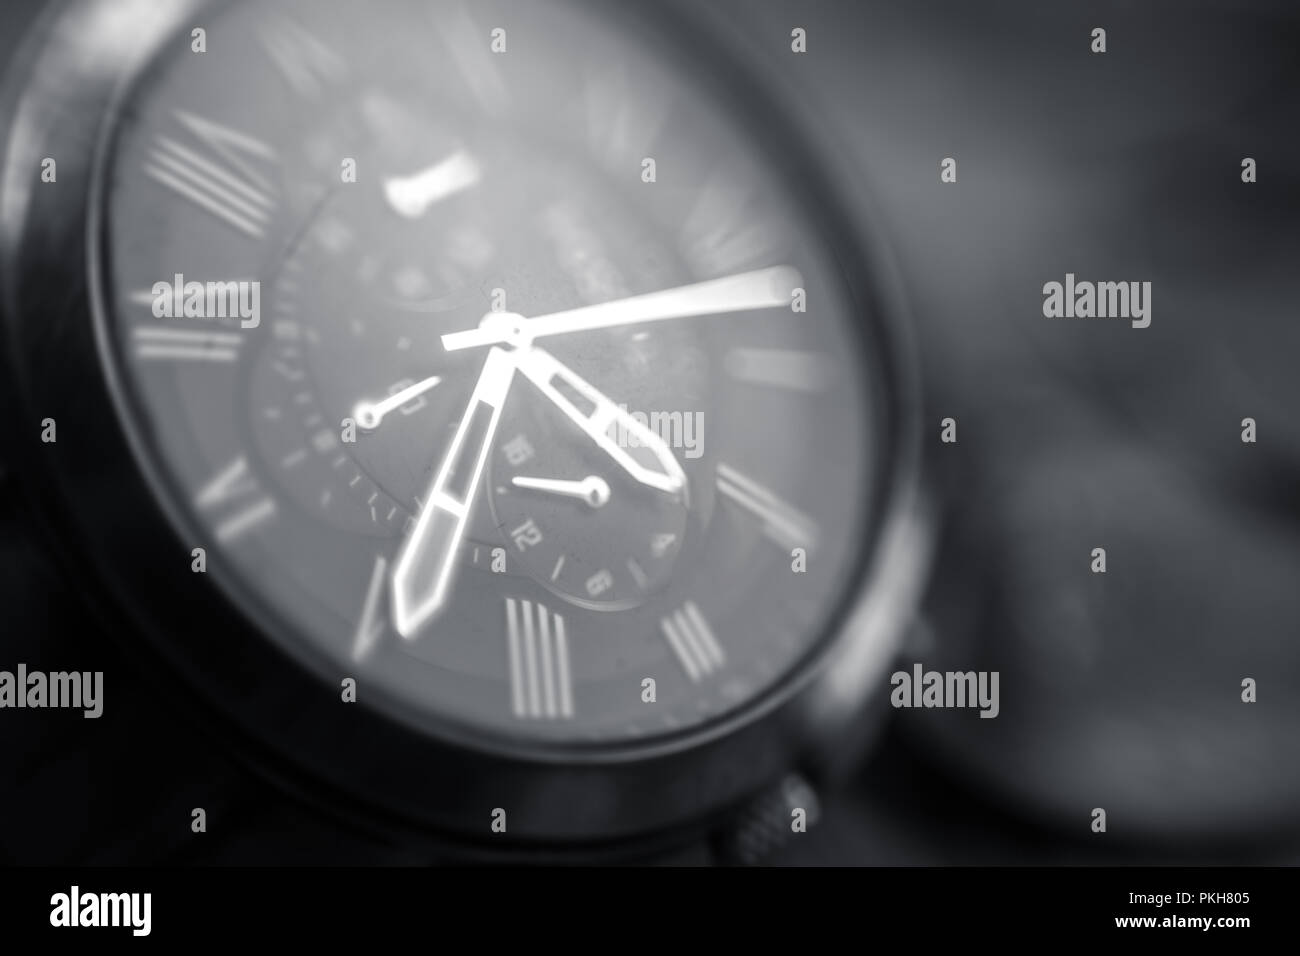 Chronograph hand watch close up makro shot - Stock Image